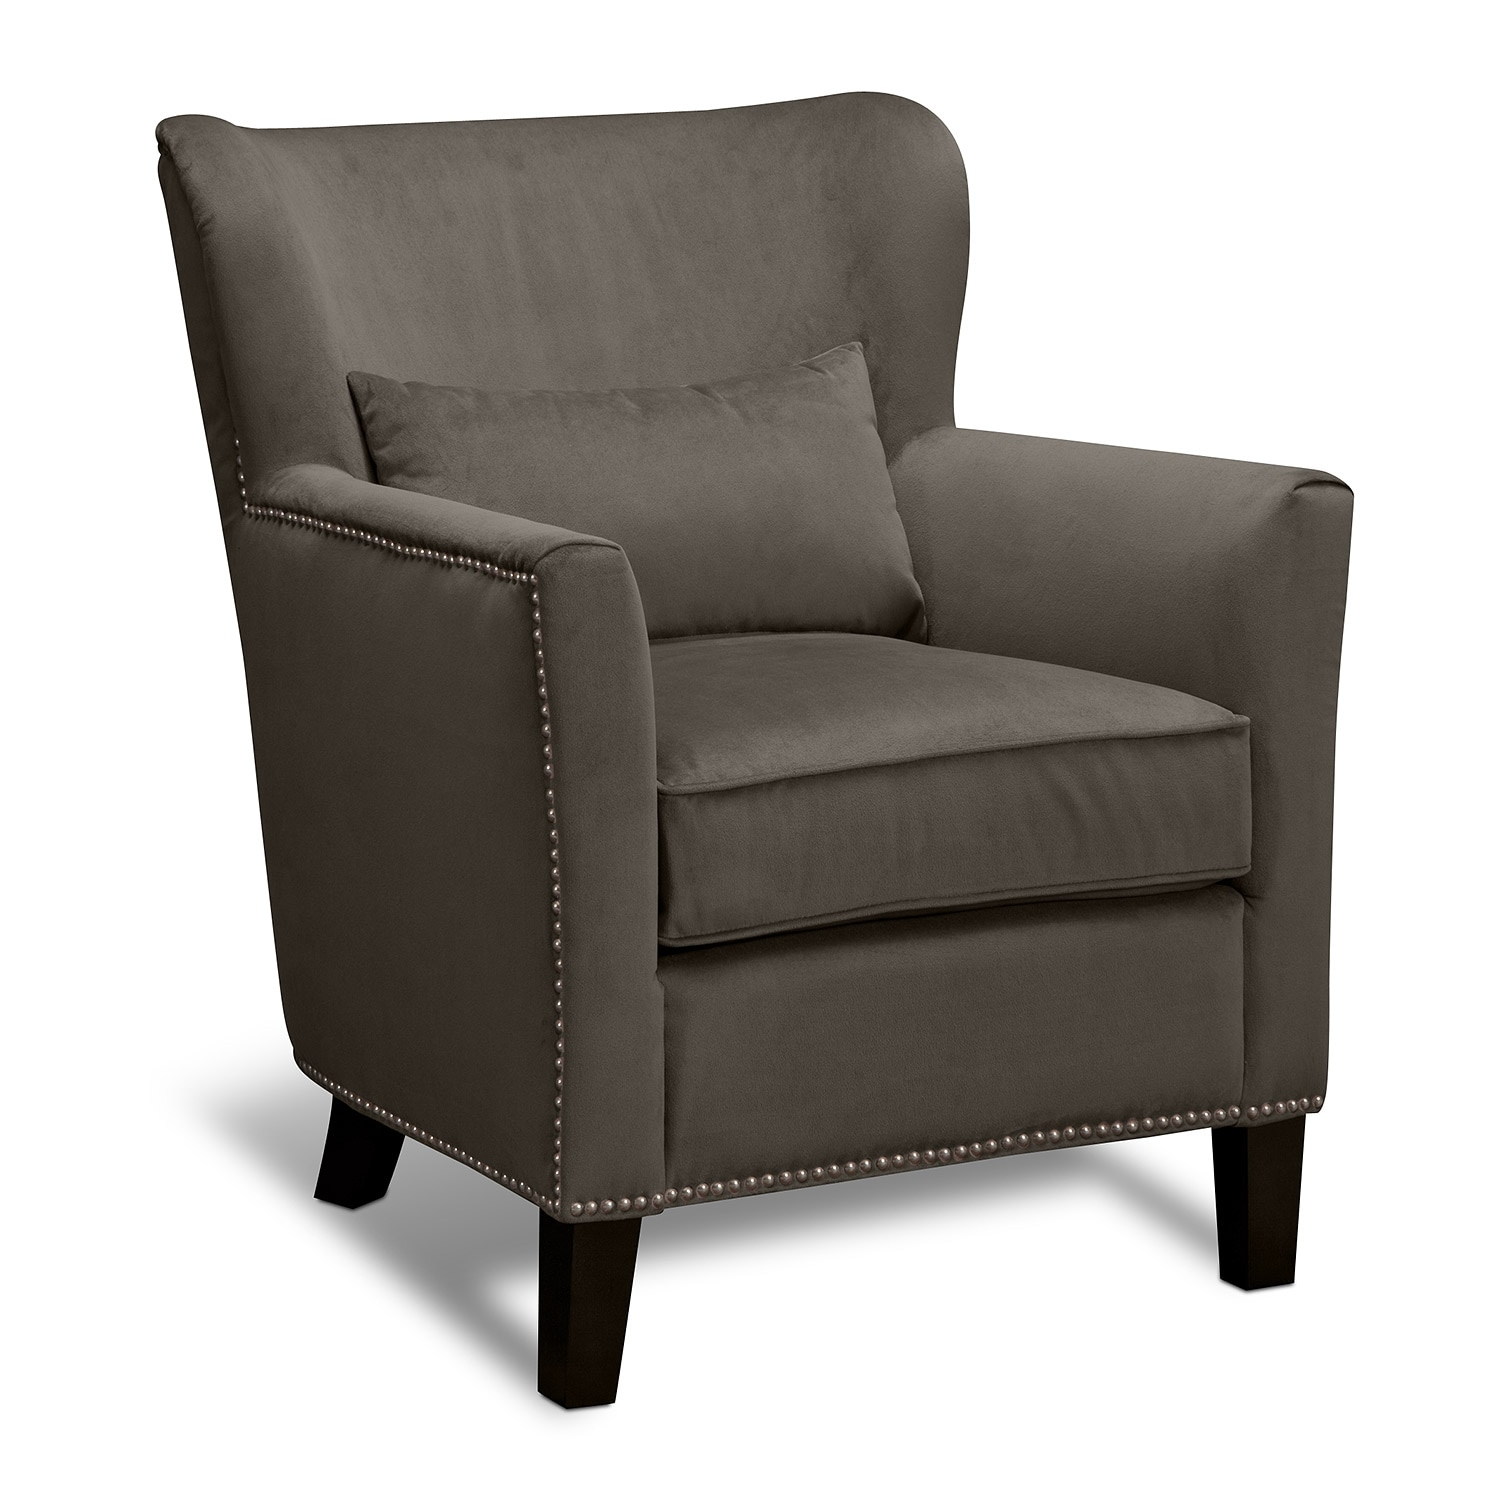 Living Room Furniture - Miata Accent Chair - Granite